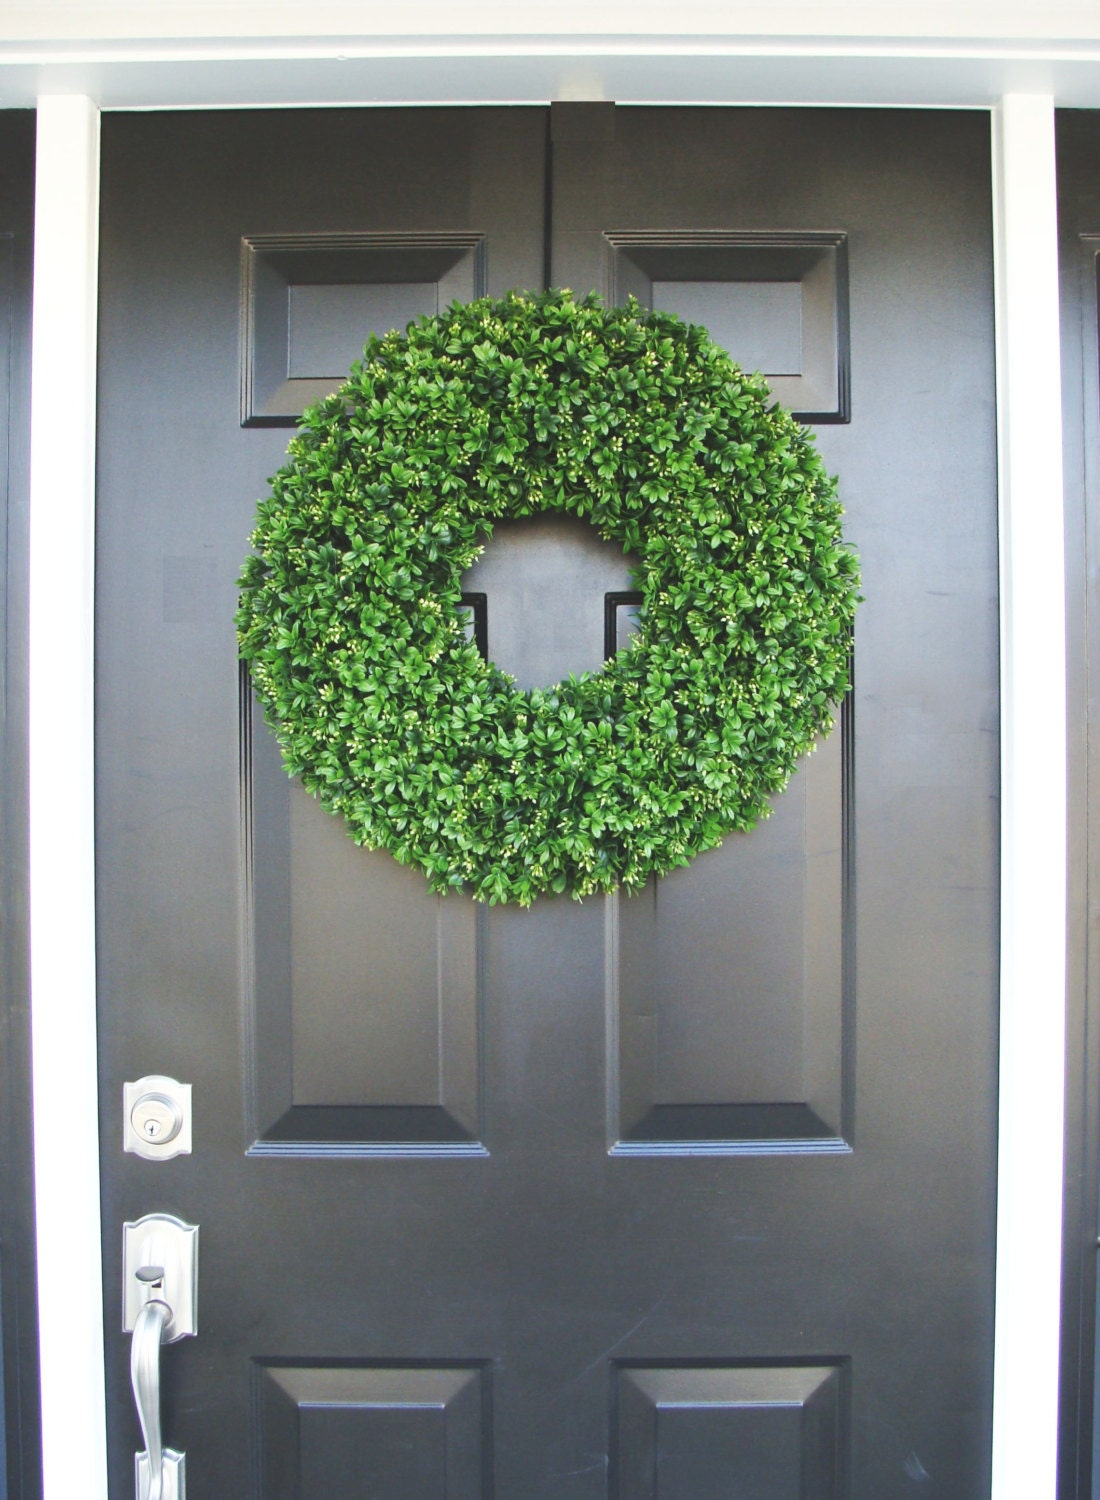 Artificial Boxwood Wreath For Sale - Summer wreath sale realistic 20 inch faux boxwood wreath sizes 14 to 30 inches available wedding door decor spring wreath